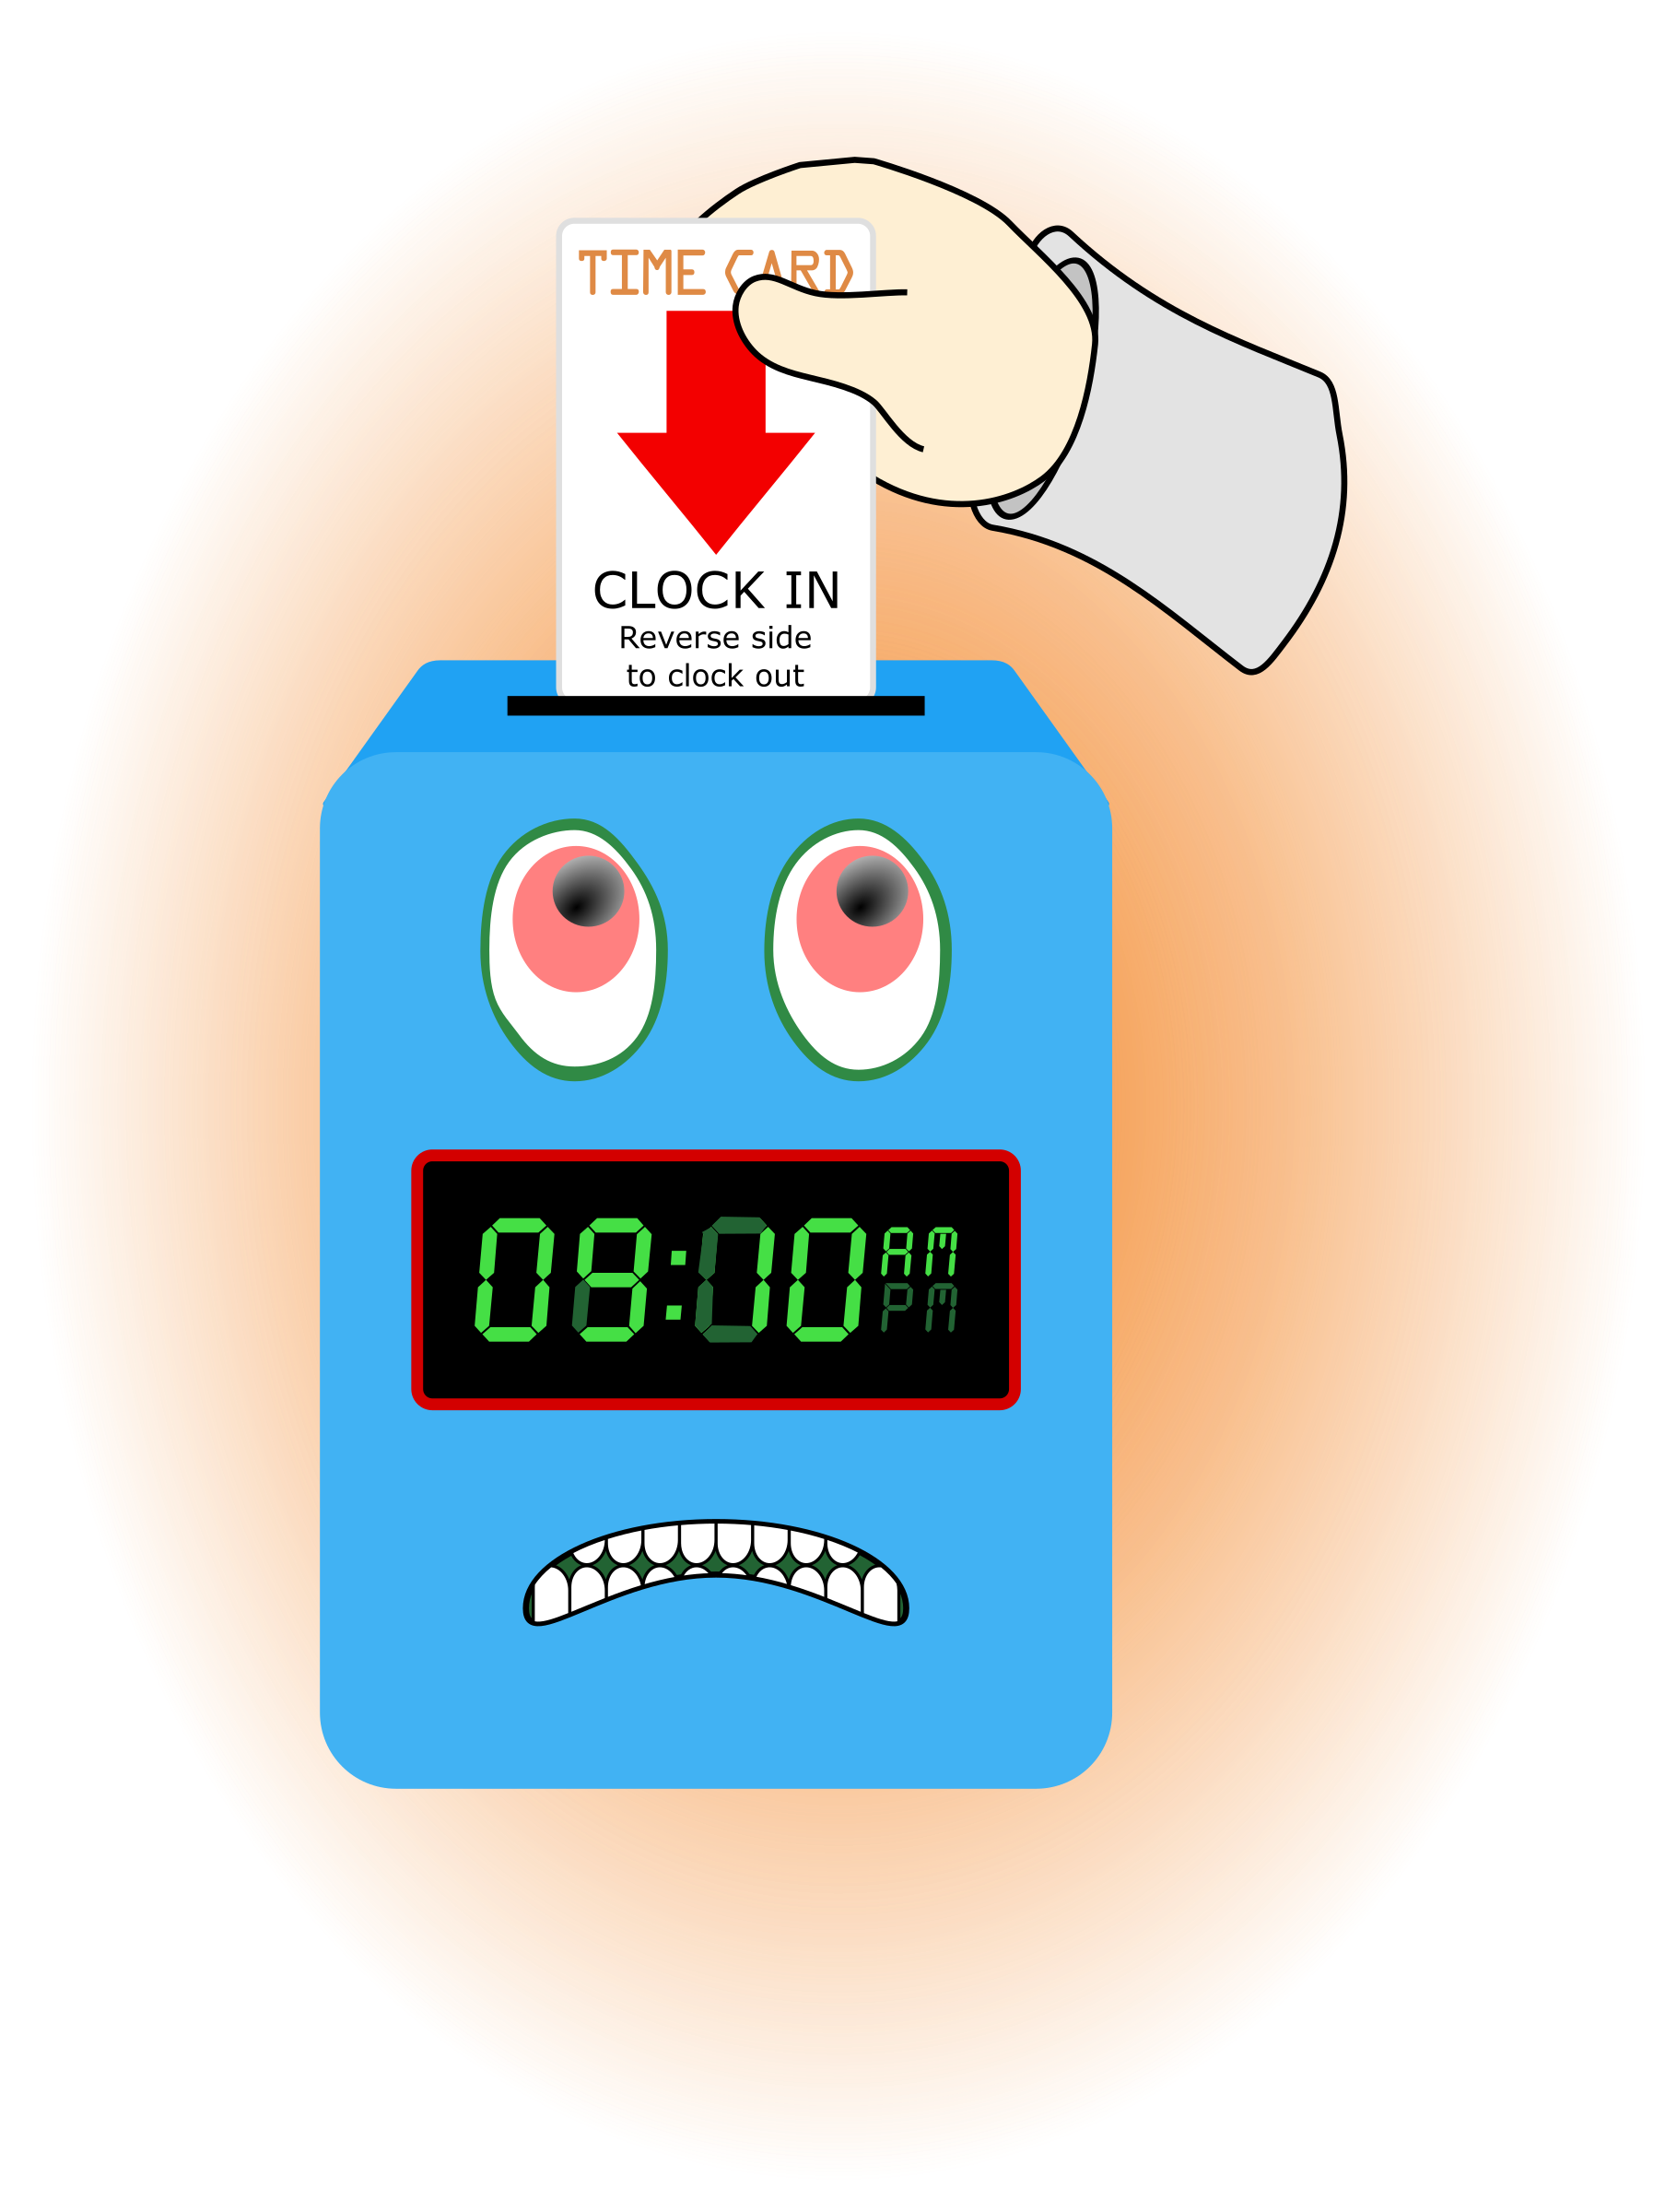 Angry clock icons png. Clocks clipart time travel